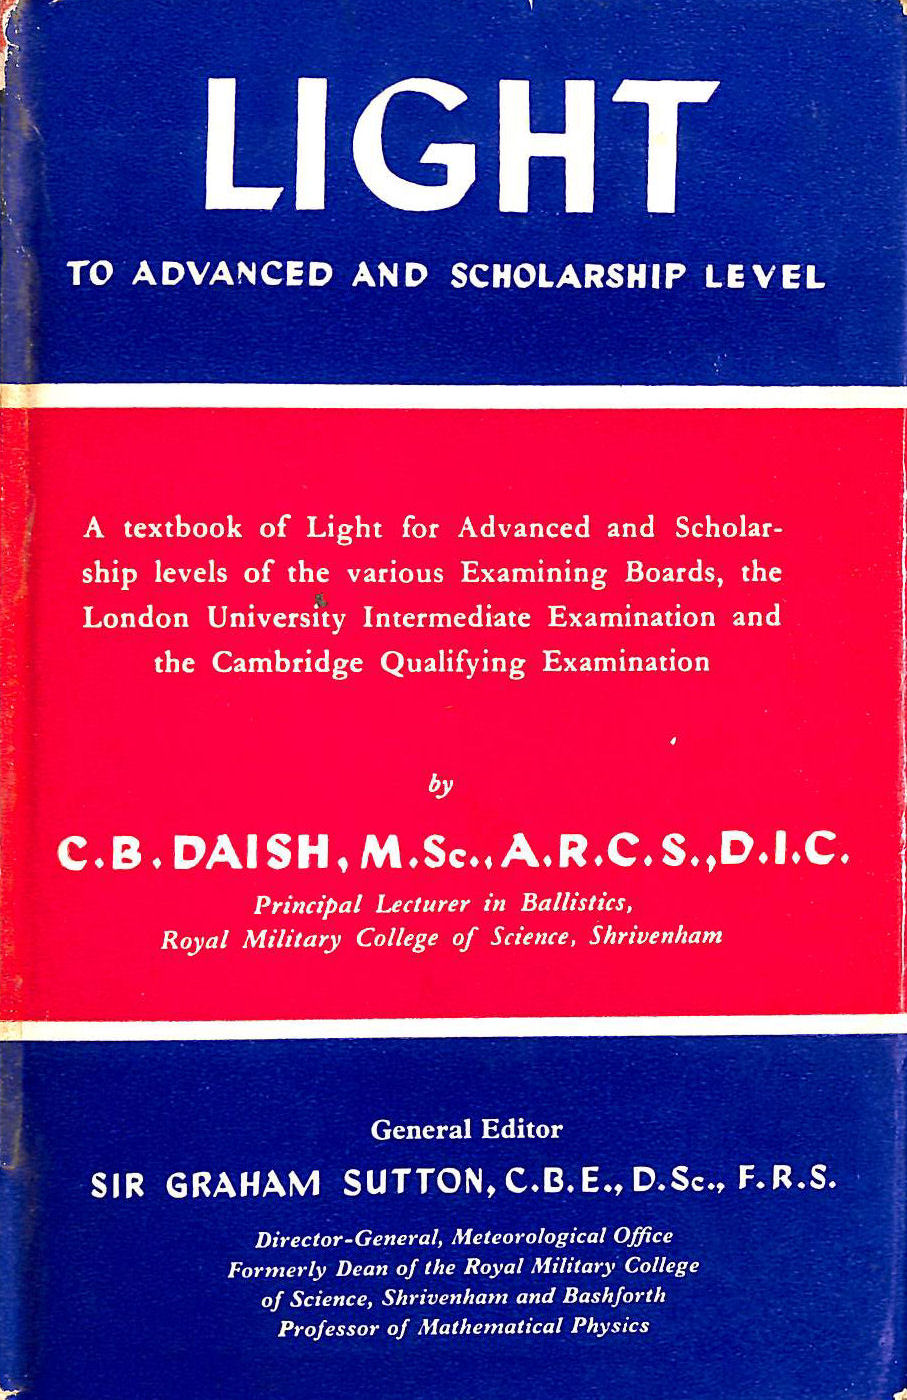 Image for Light - To Advanced and Scholarship Level